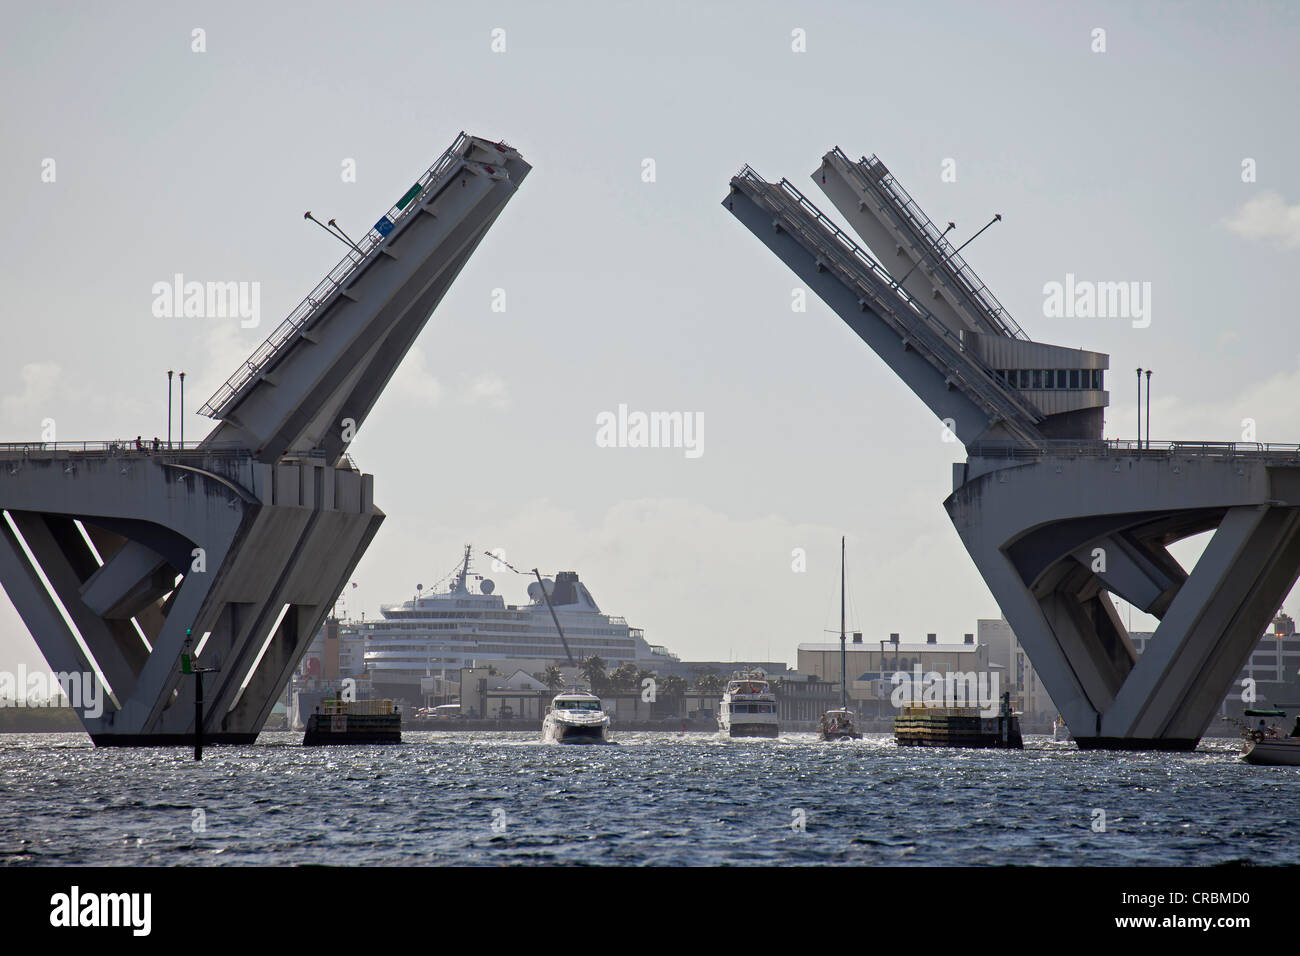 Bascule bridge in the harbour of Port Everglades in Ford Lauderdale, Florida, USA - Stock Image